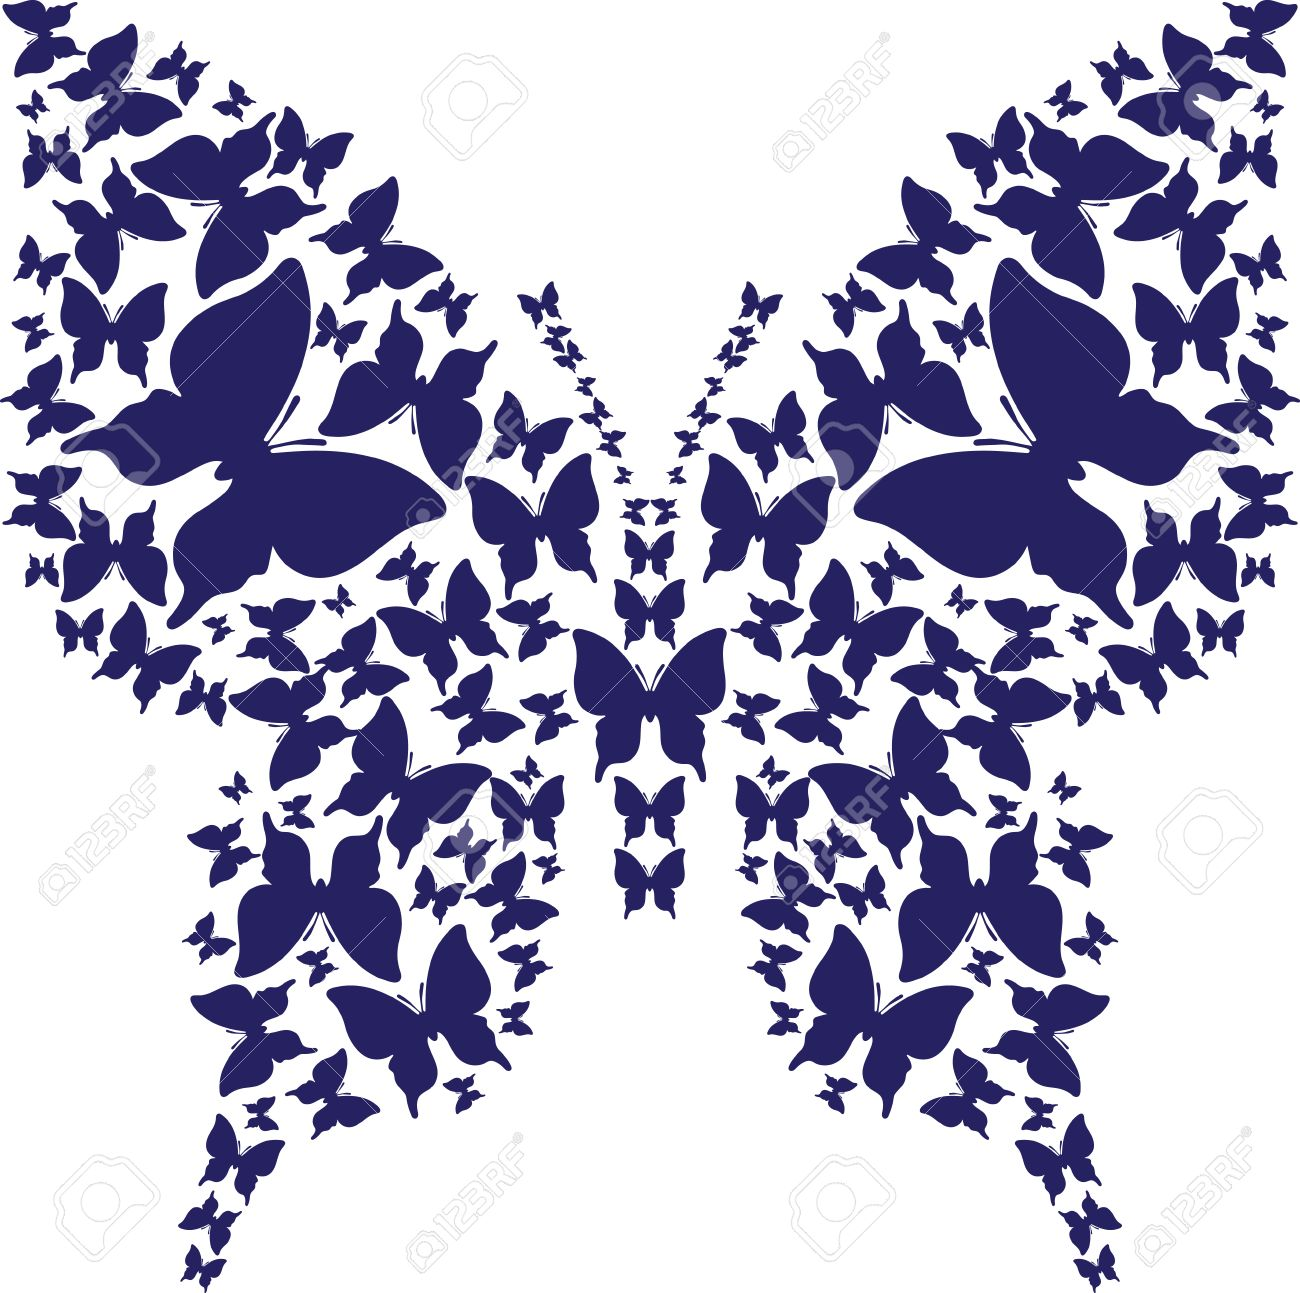 abstract stencil symmetry outline butterfly from dark blue